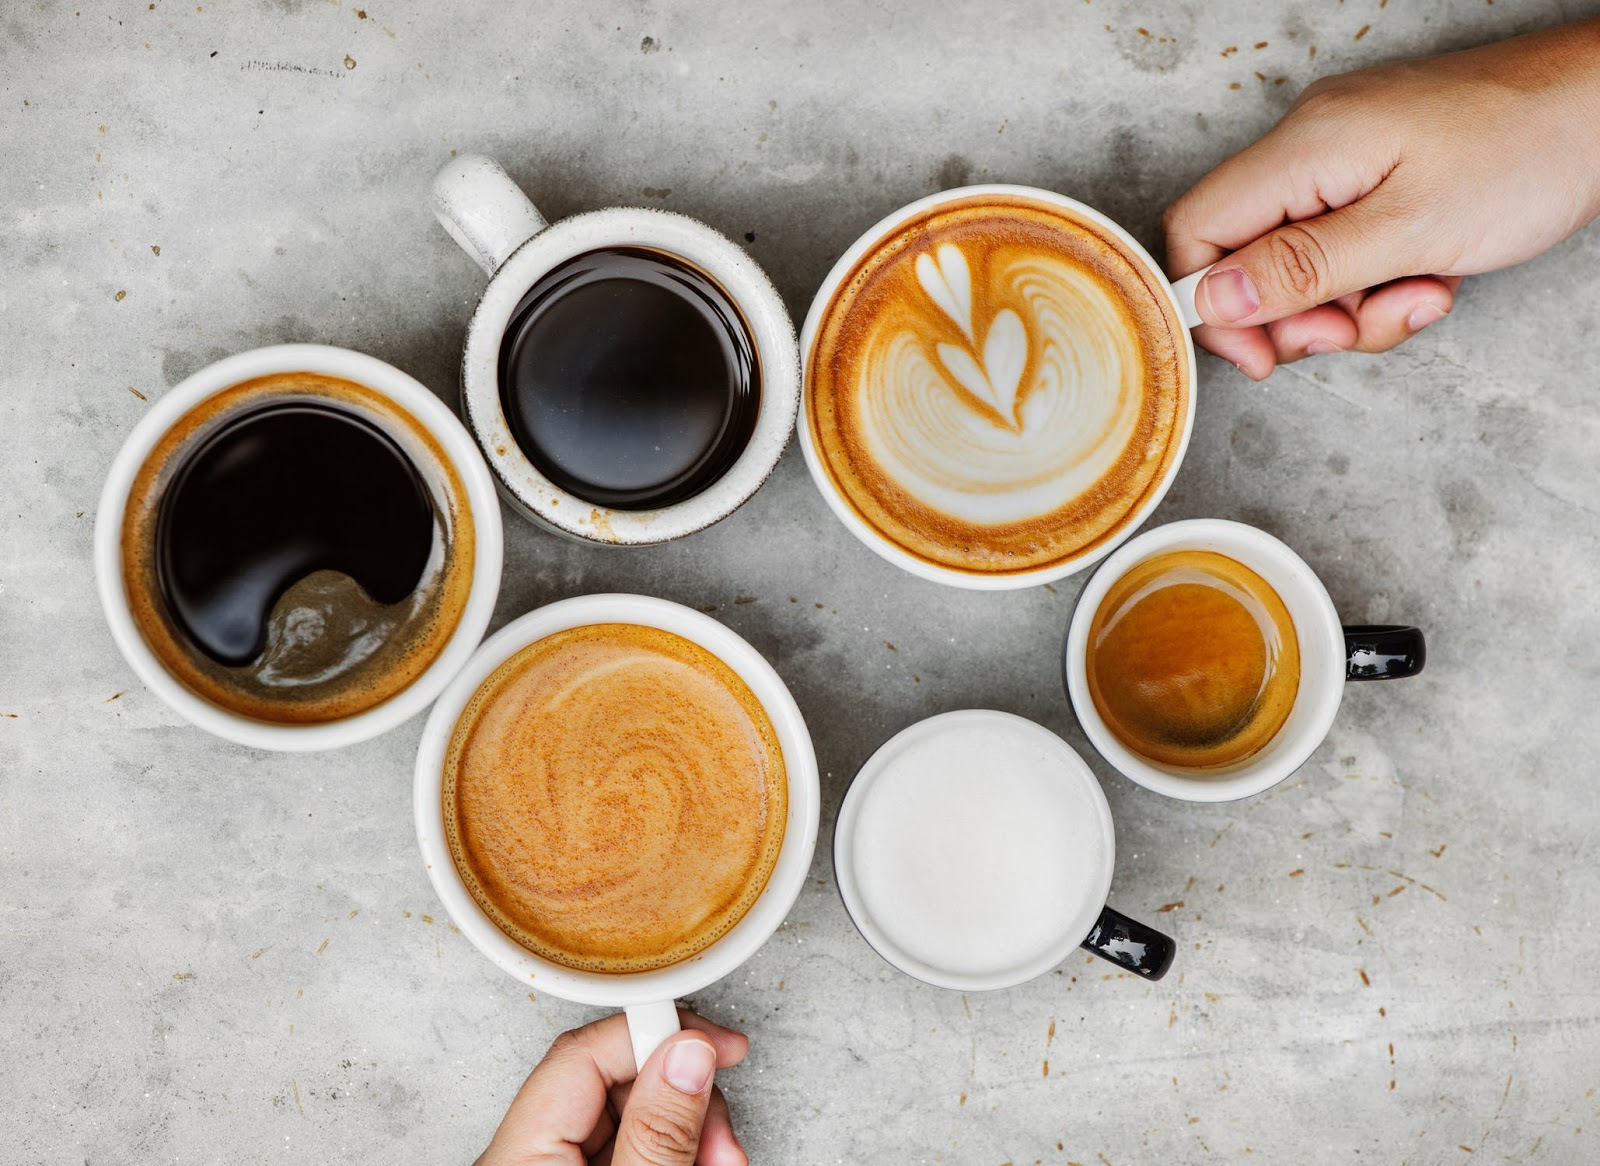 6 cups of coffee in different colors